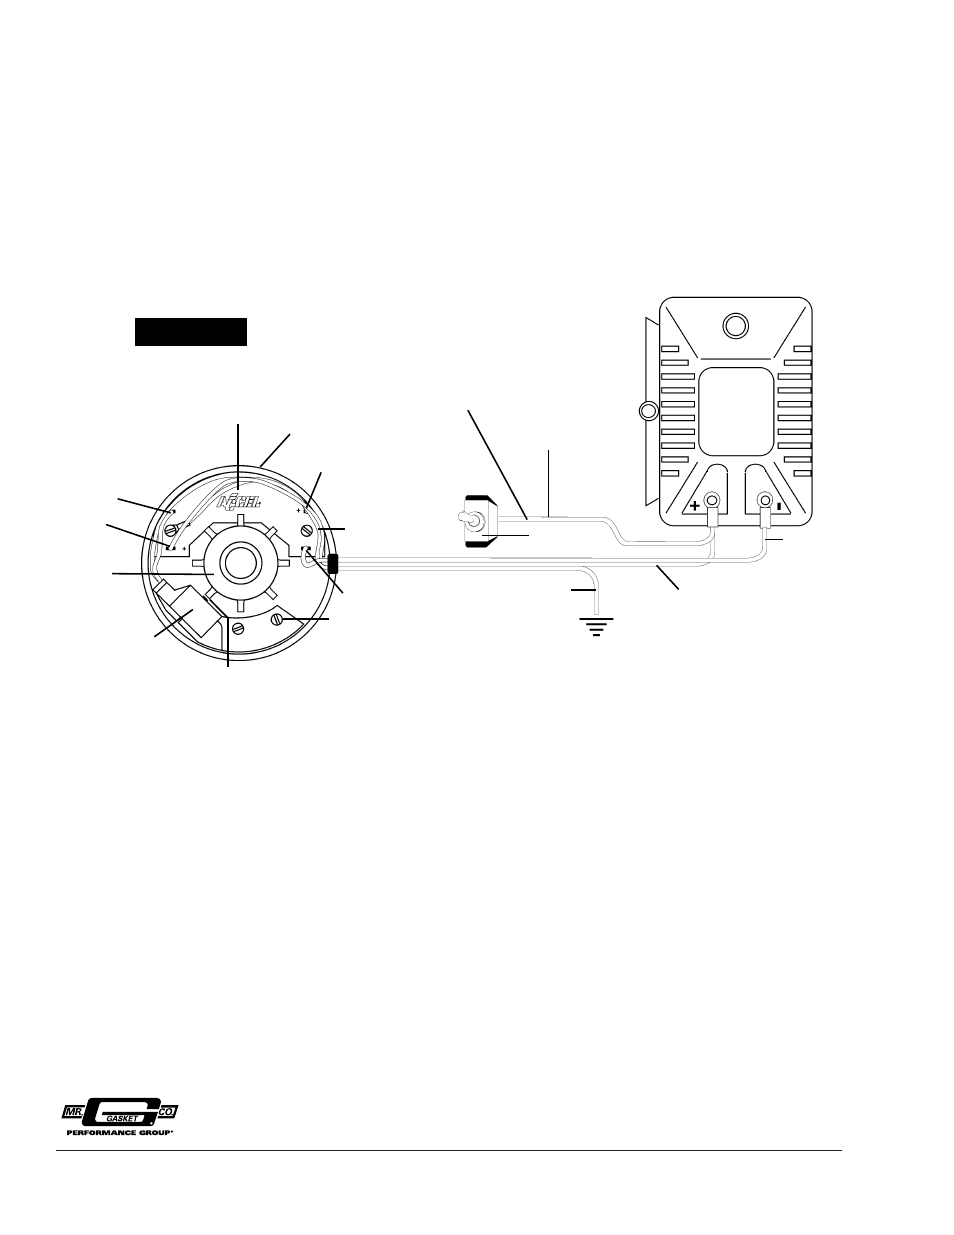 Mallory magnetic breakerless wiring diagram wiring diagrams on mallory unilite wiring diagram Distributor Wiring Diagram mallory electronic distributor wiring diagram